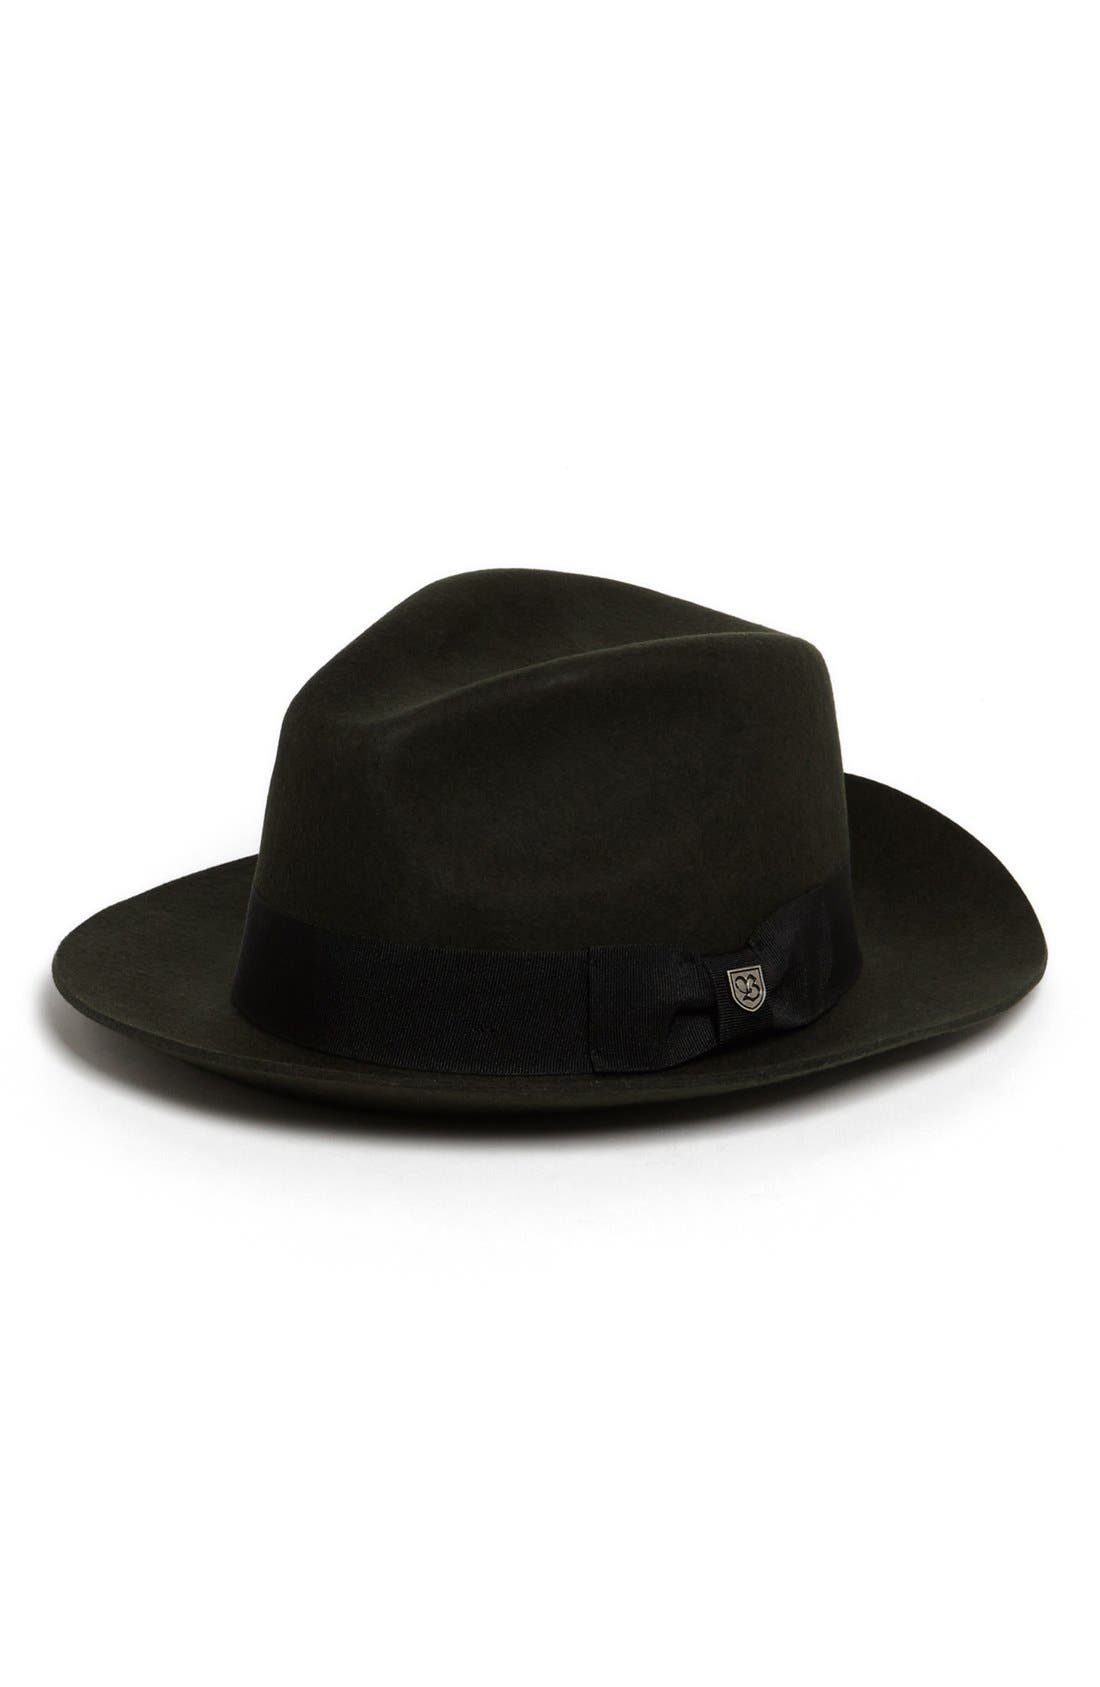 Alternate Image 1 Selected - Brixton 'Ranch' Fedora